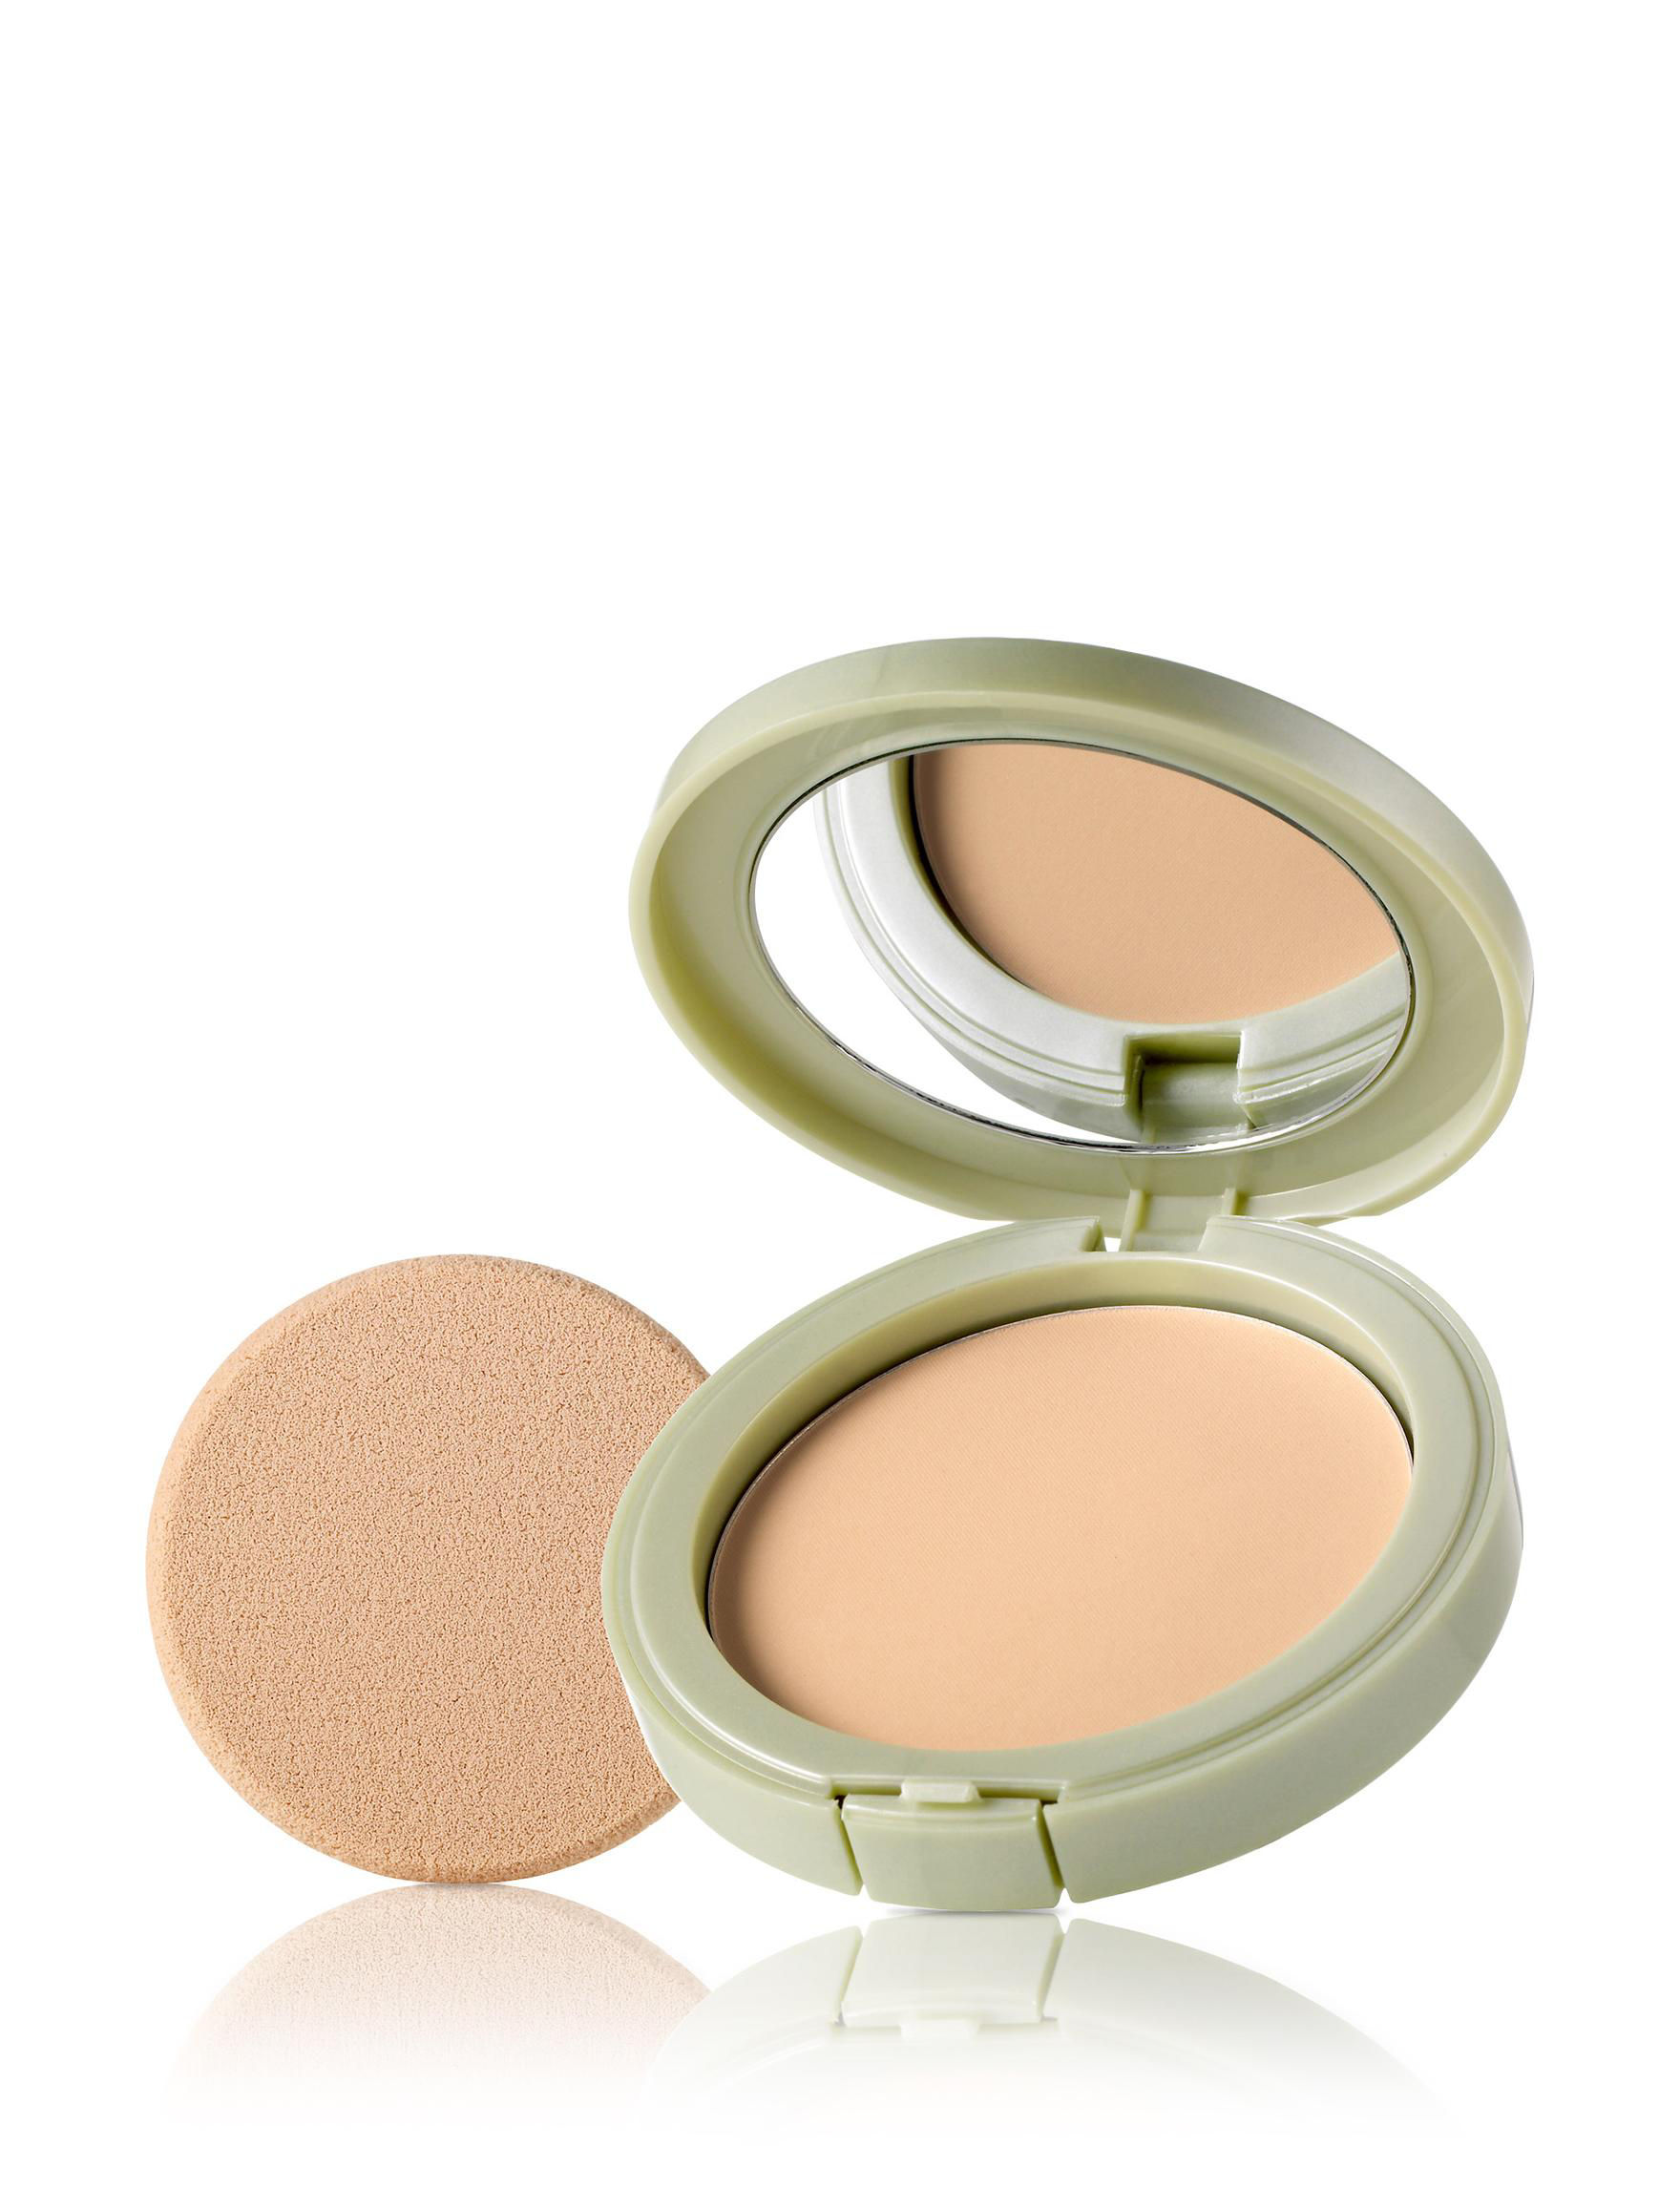 Origins Tender Face Powder